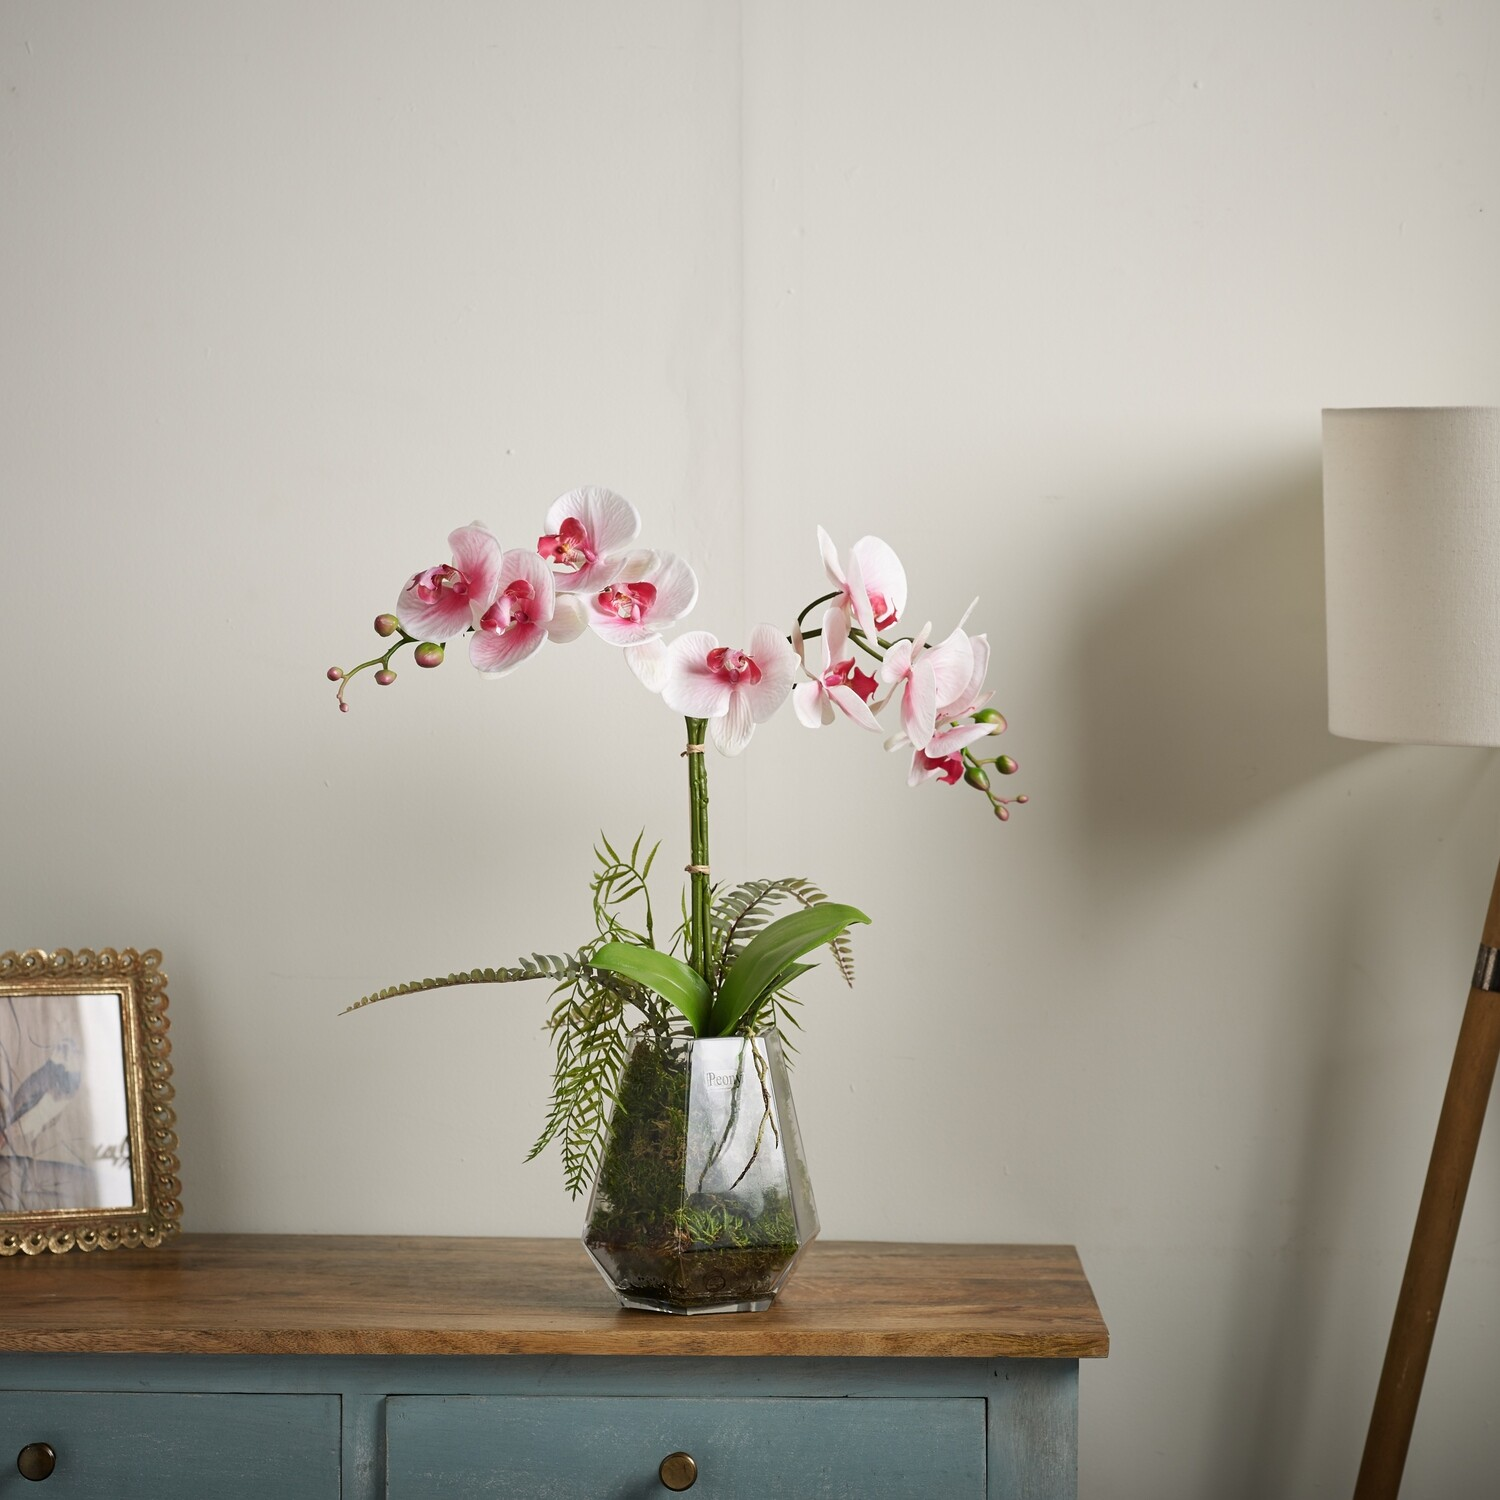 PHALAENOPSIS ORCHID IN A GEOMETRIC GLASS VASE